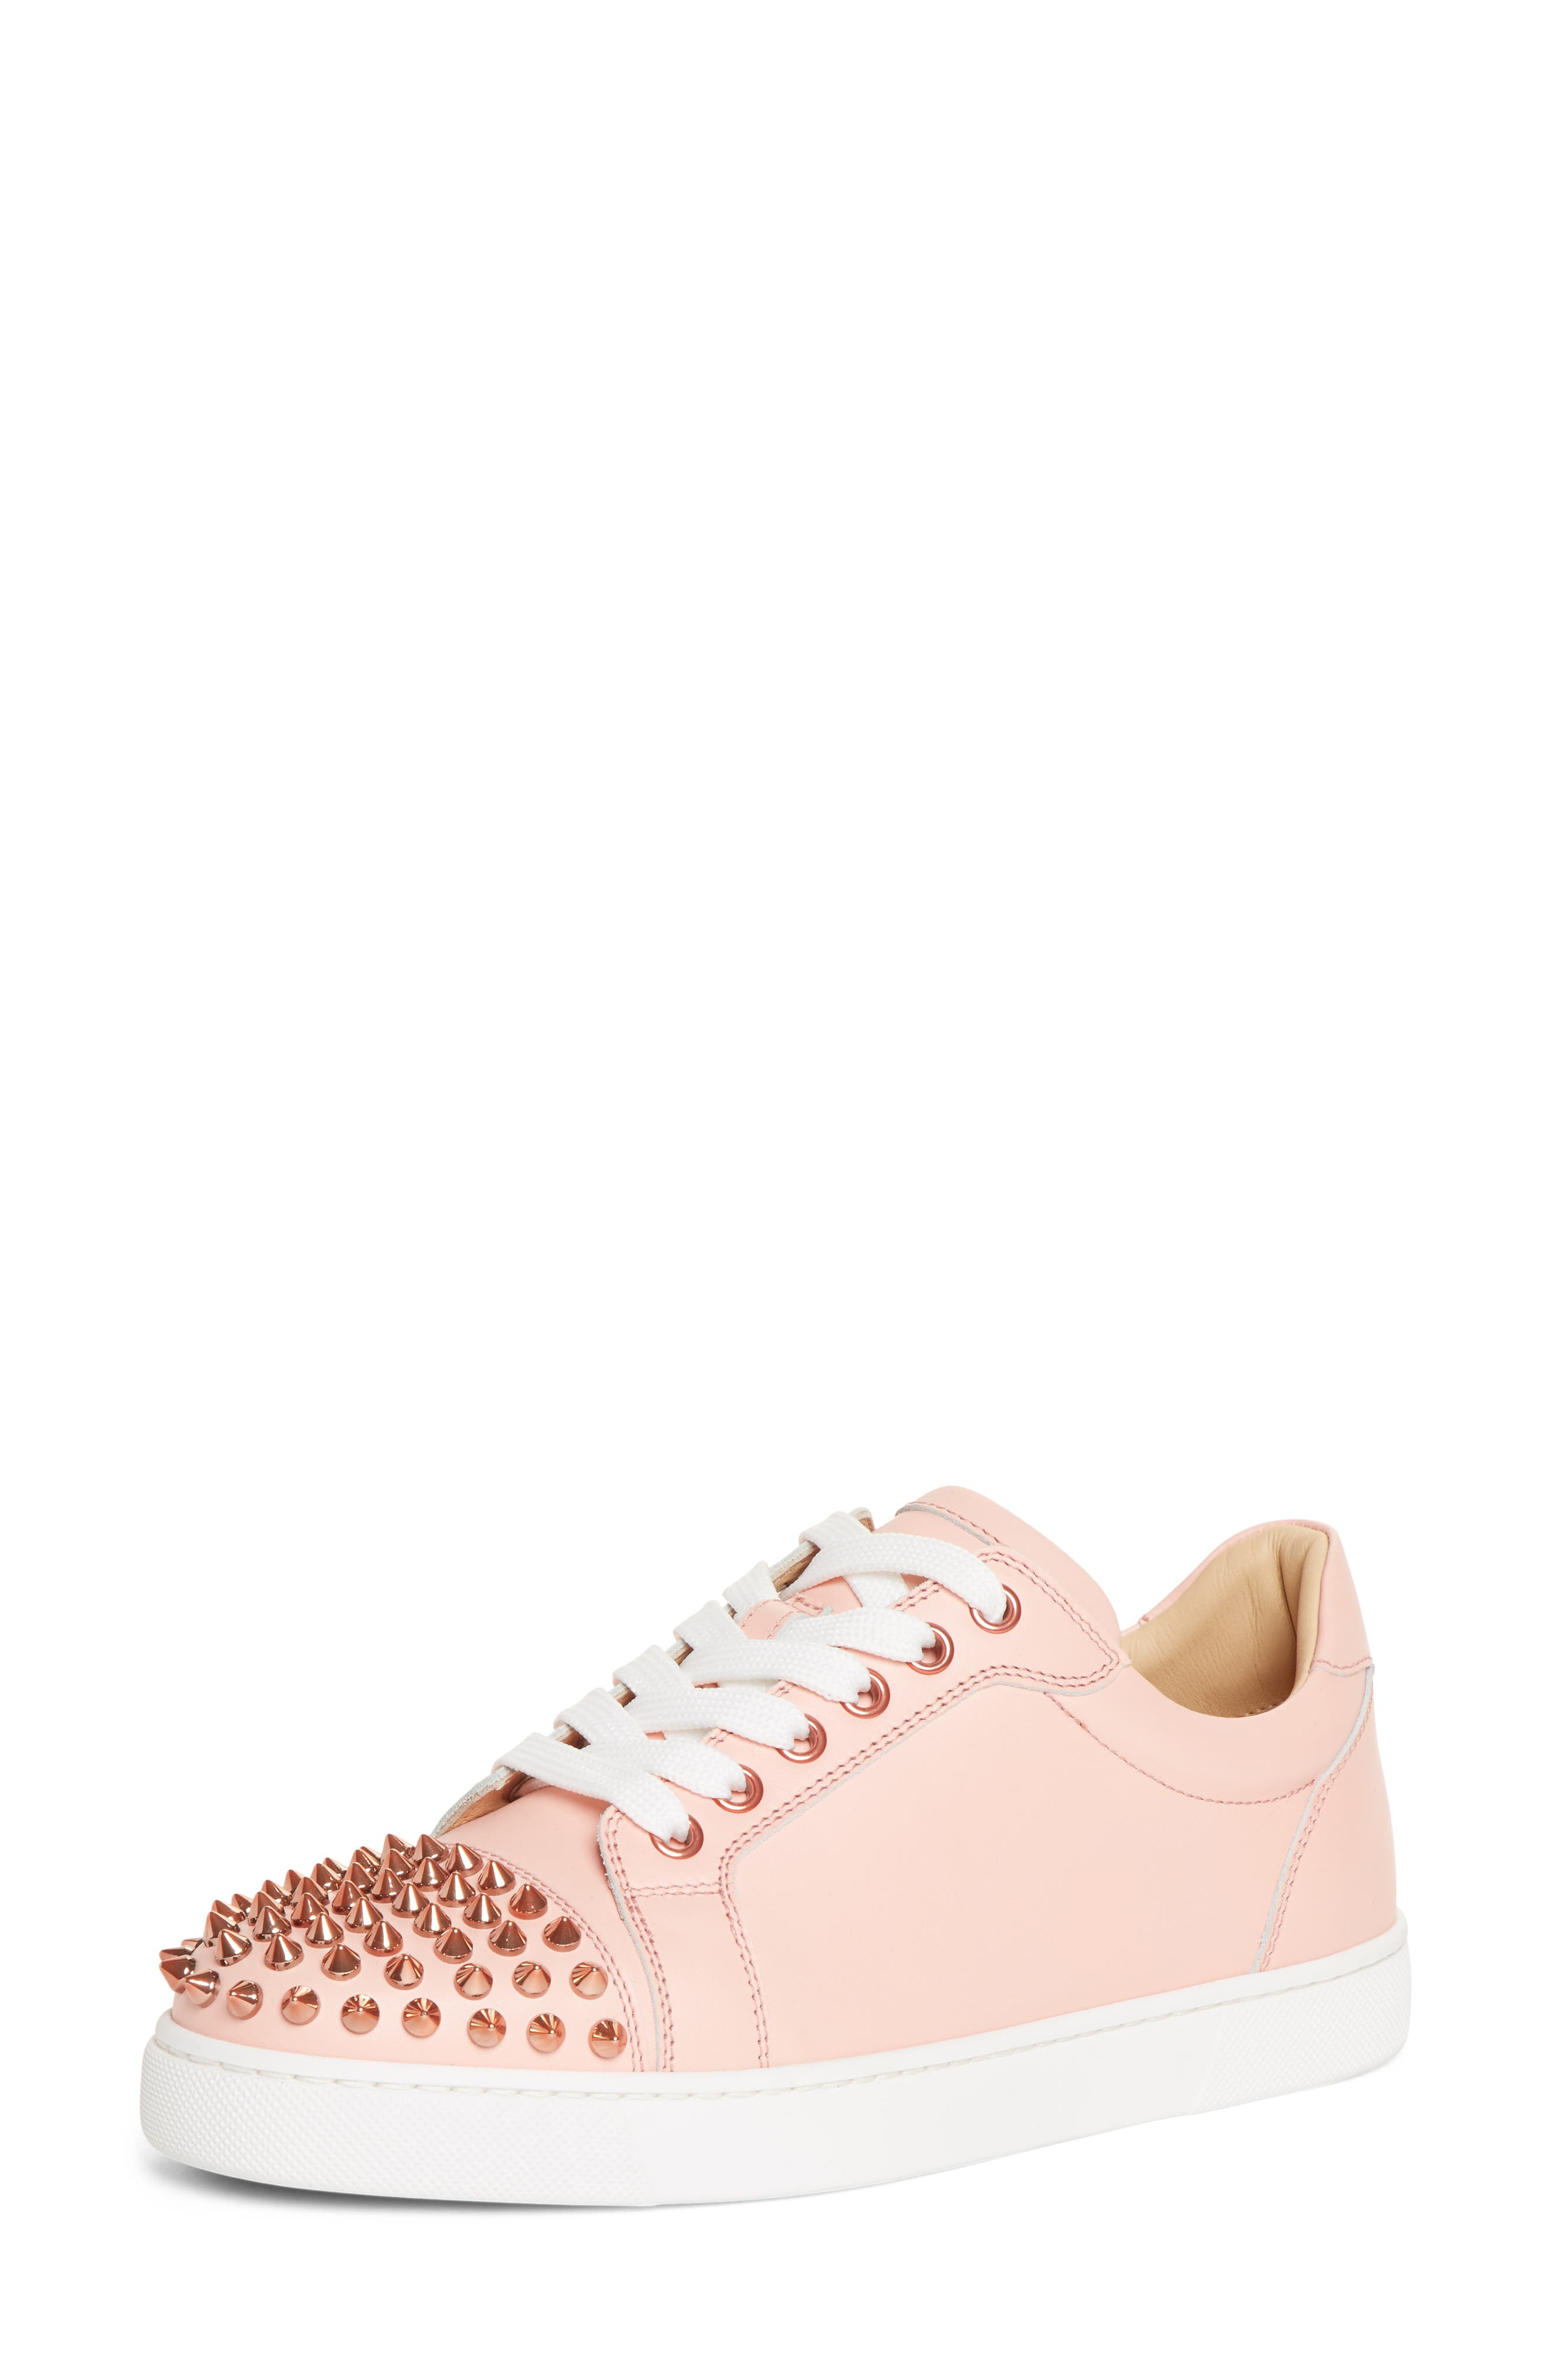 Christian Louboutin Vieira Spiked Low Top Sneaker, Pink